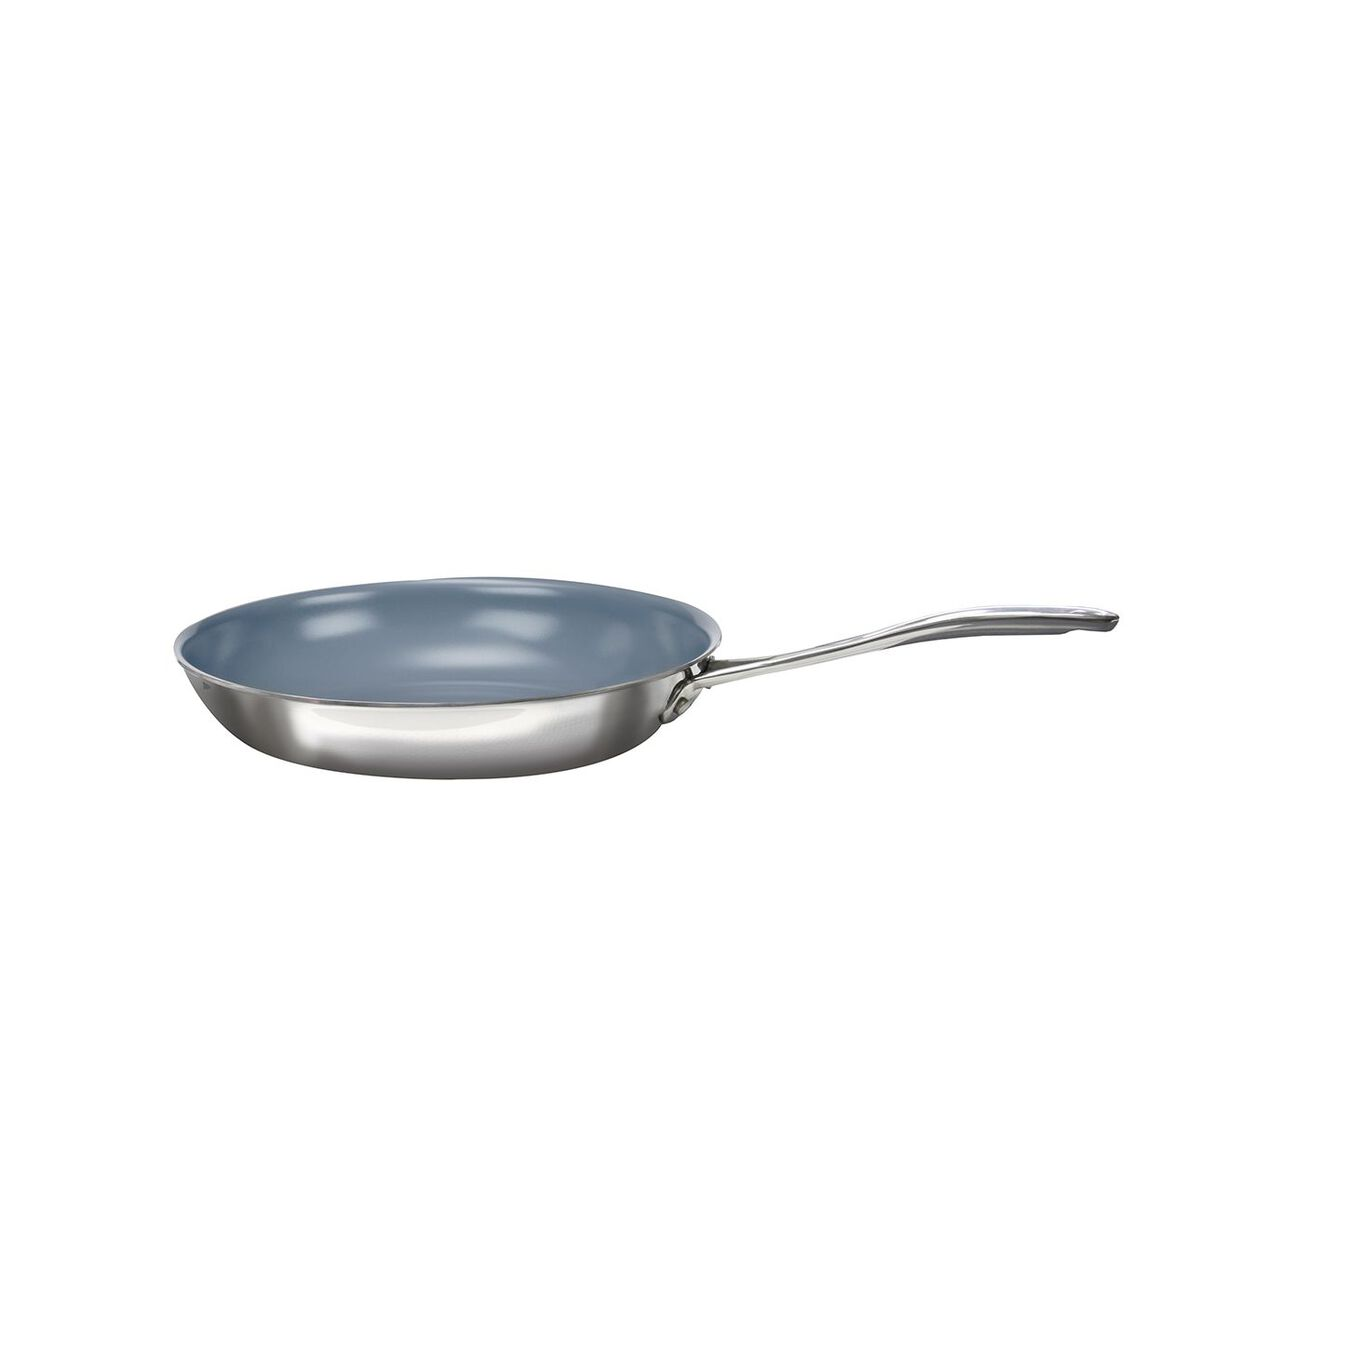 26 cm 18/10 Stainless Steel Poêle,,large 1